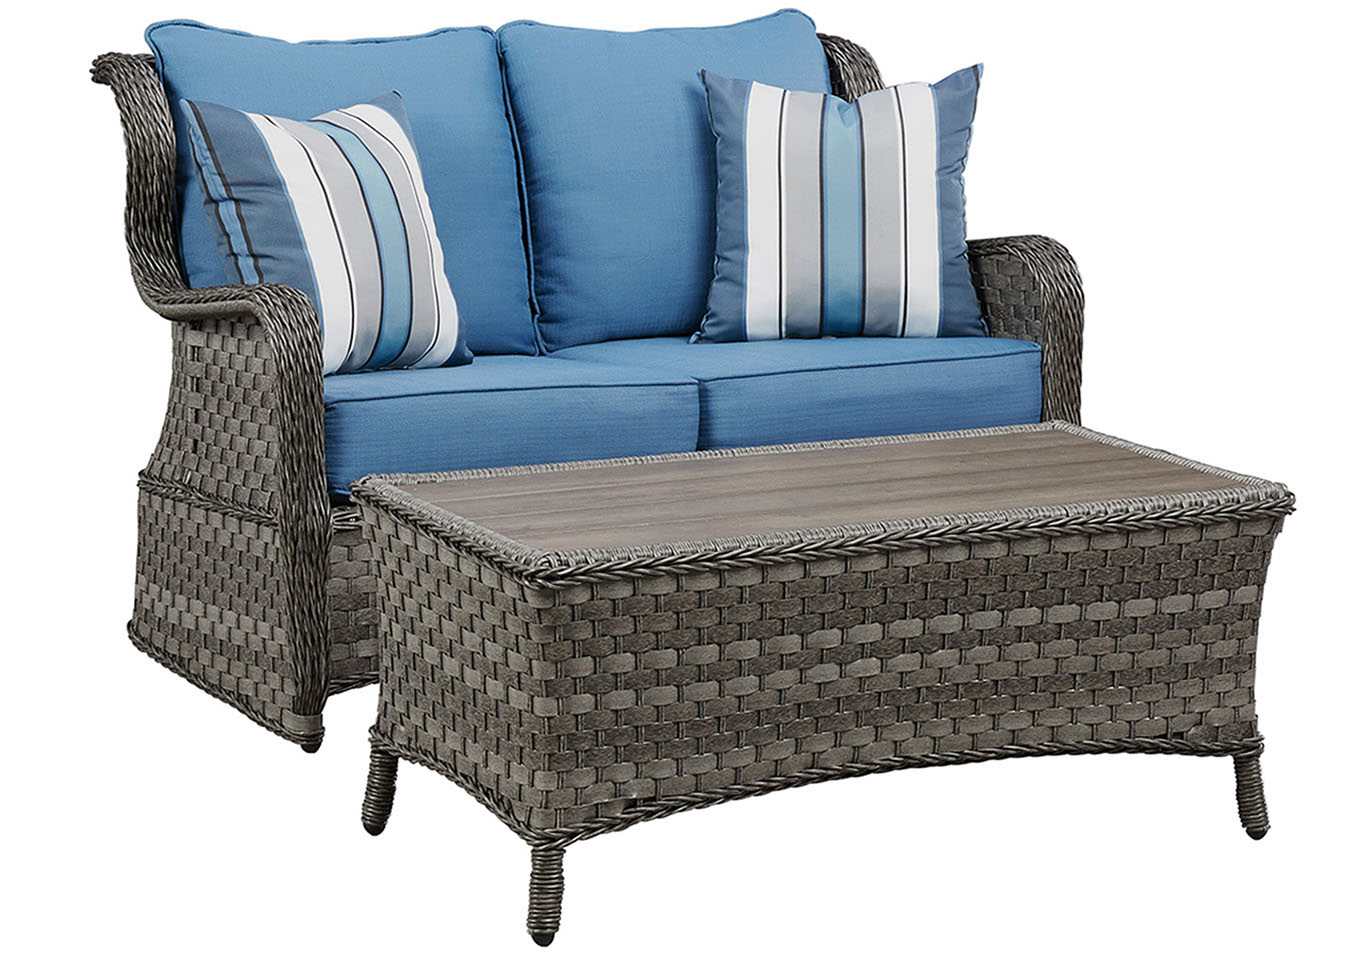 Payless furniture houston tx pasedena tx texas abbots court blue gray loveseat glider w table